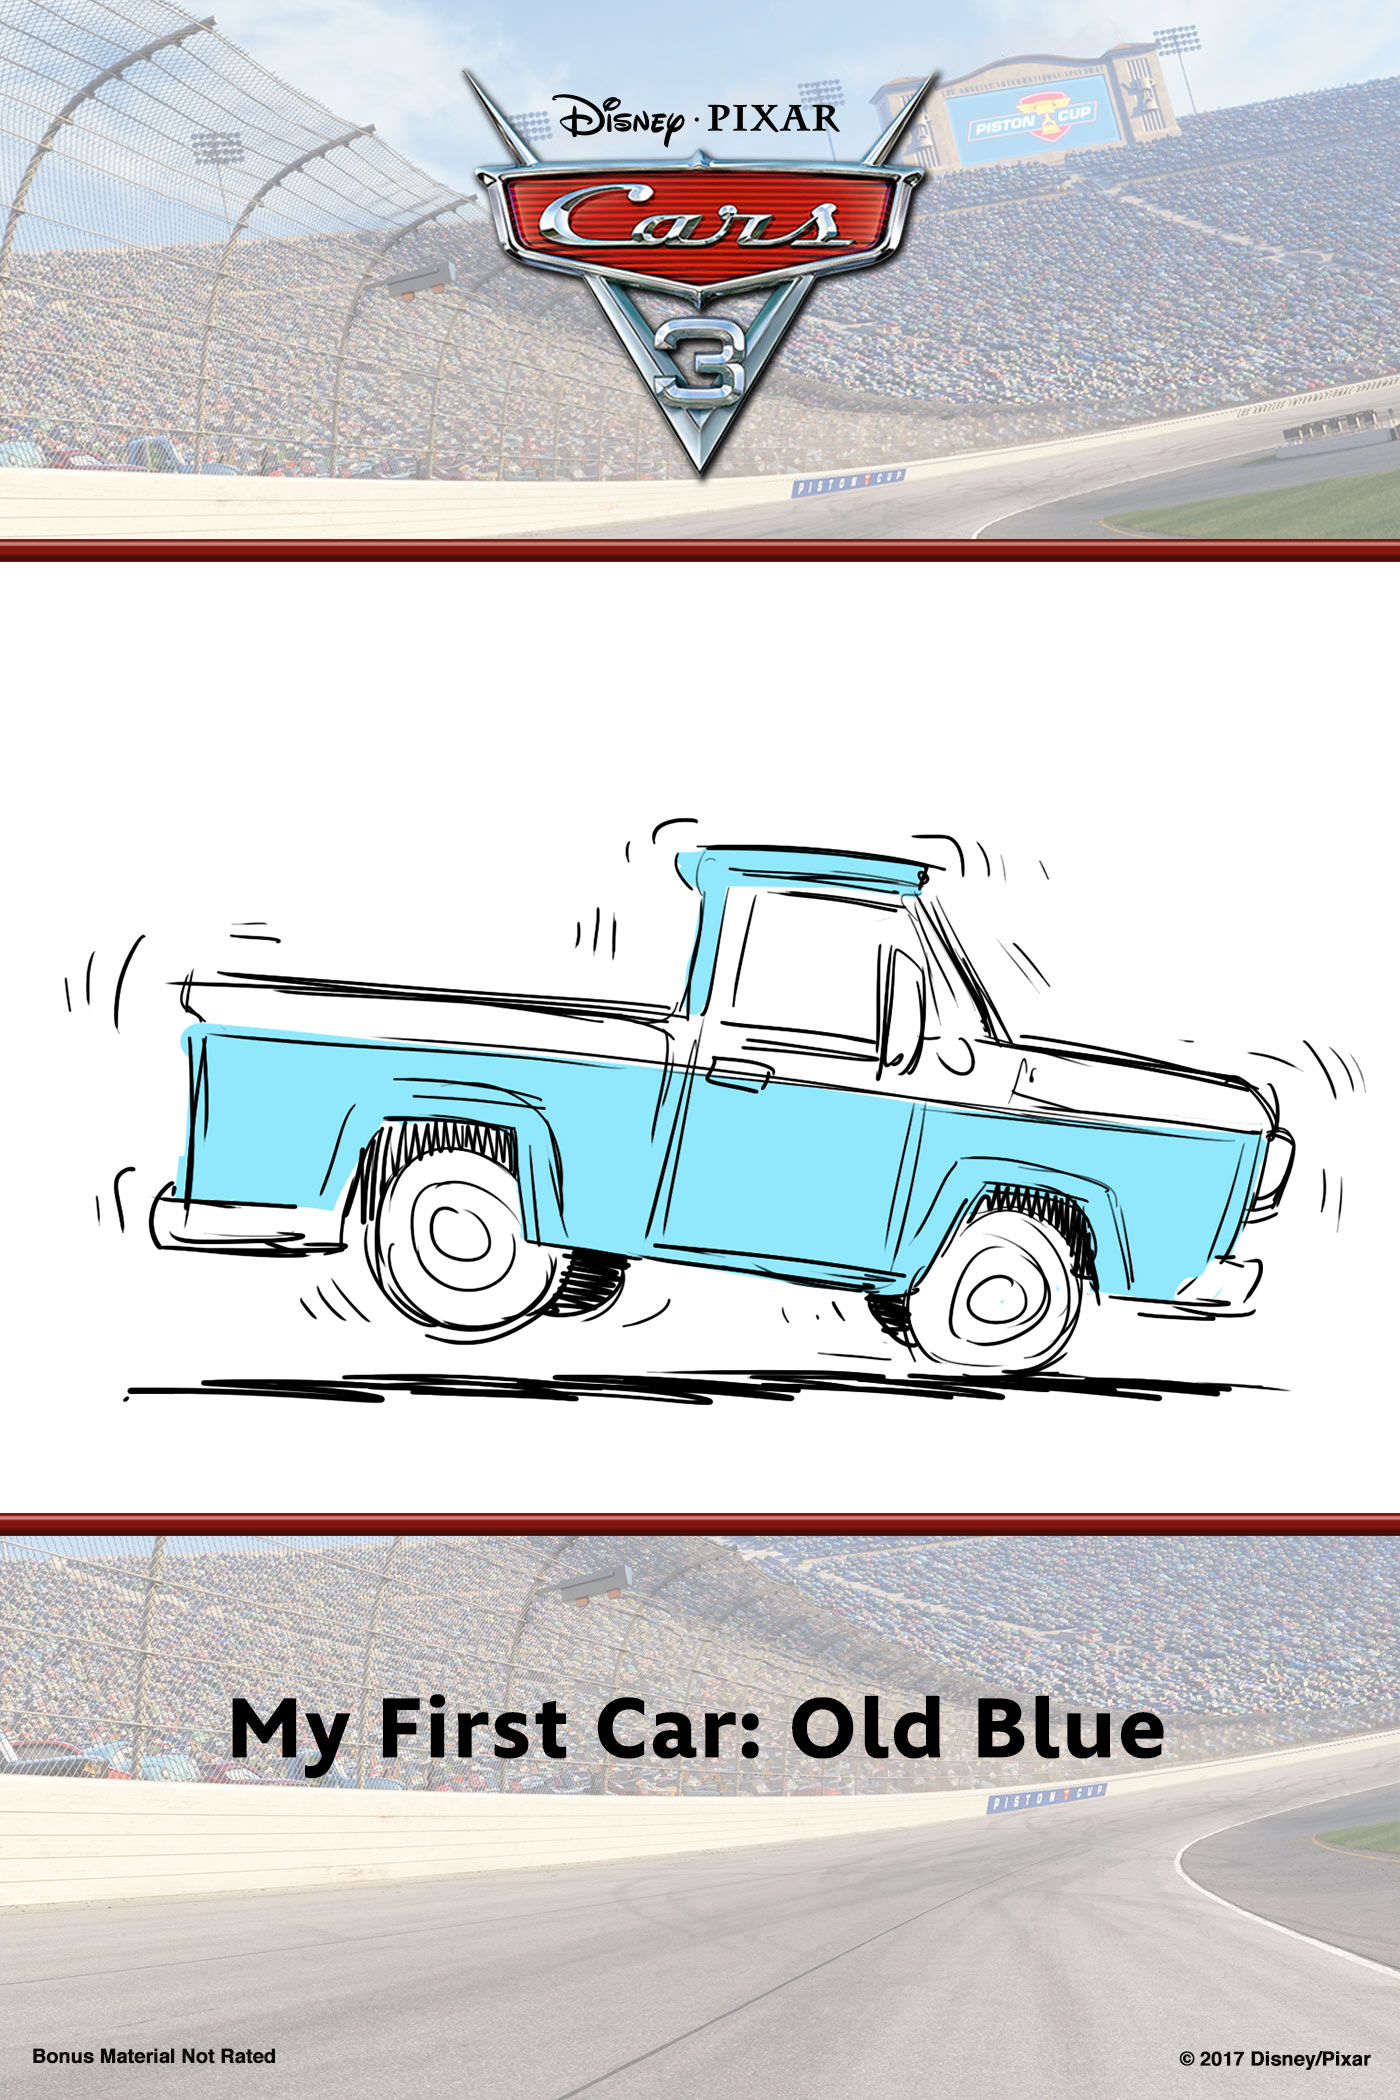 My First Car: Old Blue